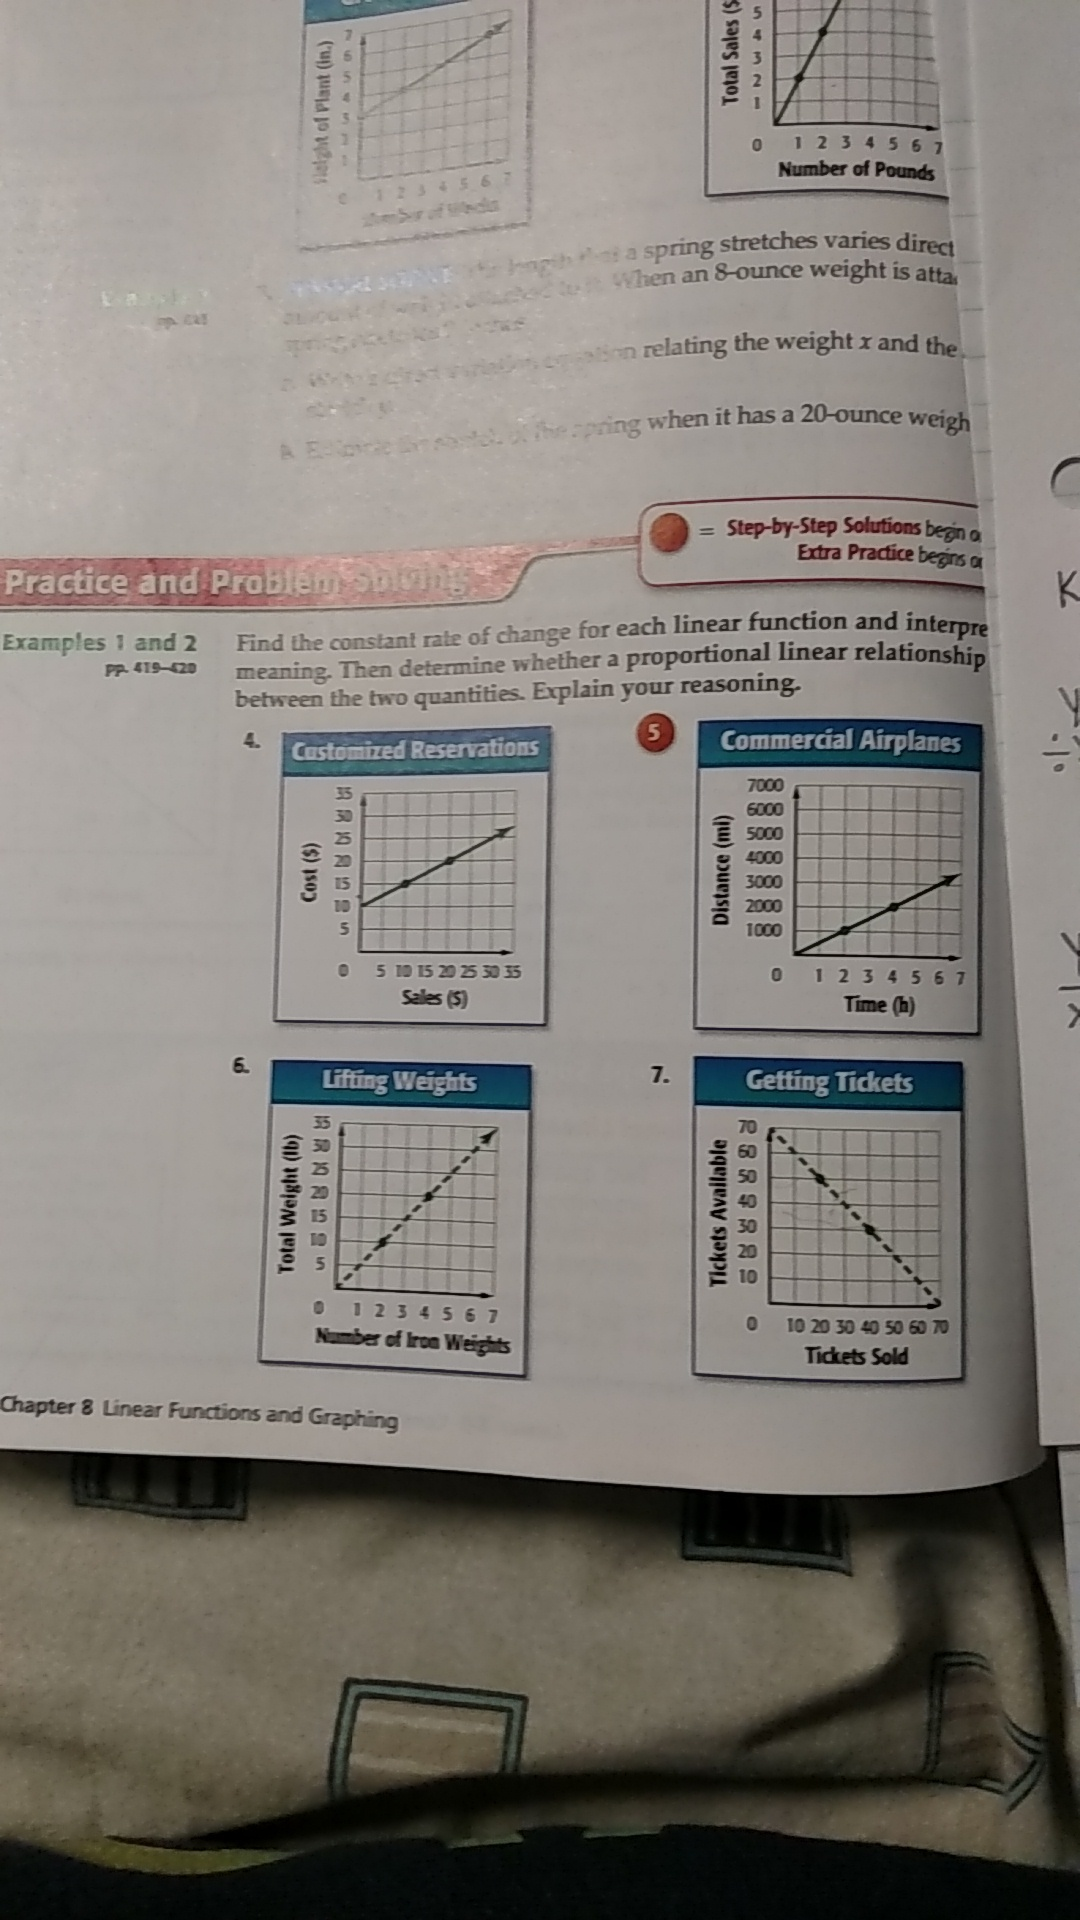 How Do You Find The Constant Rate Of Change For A Linear